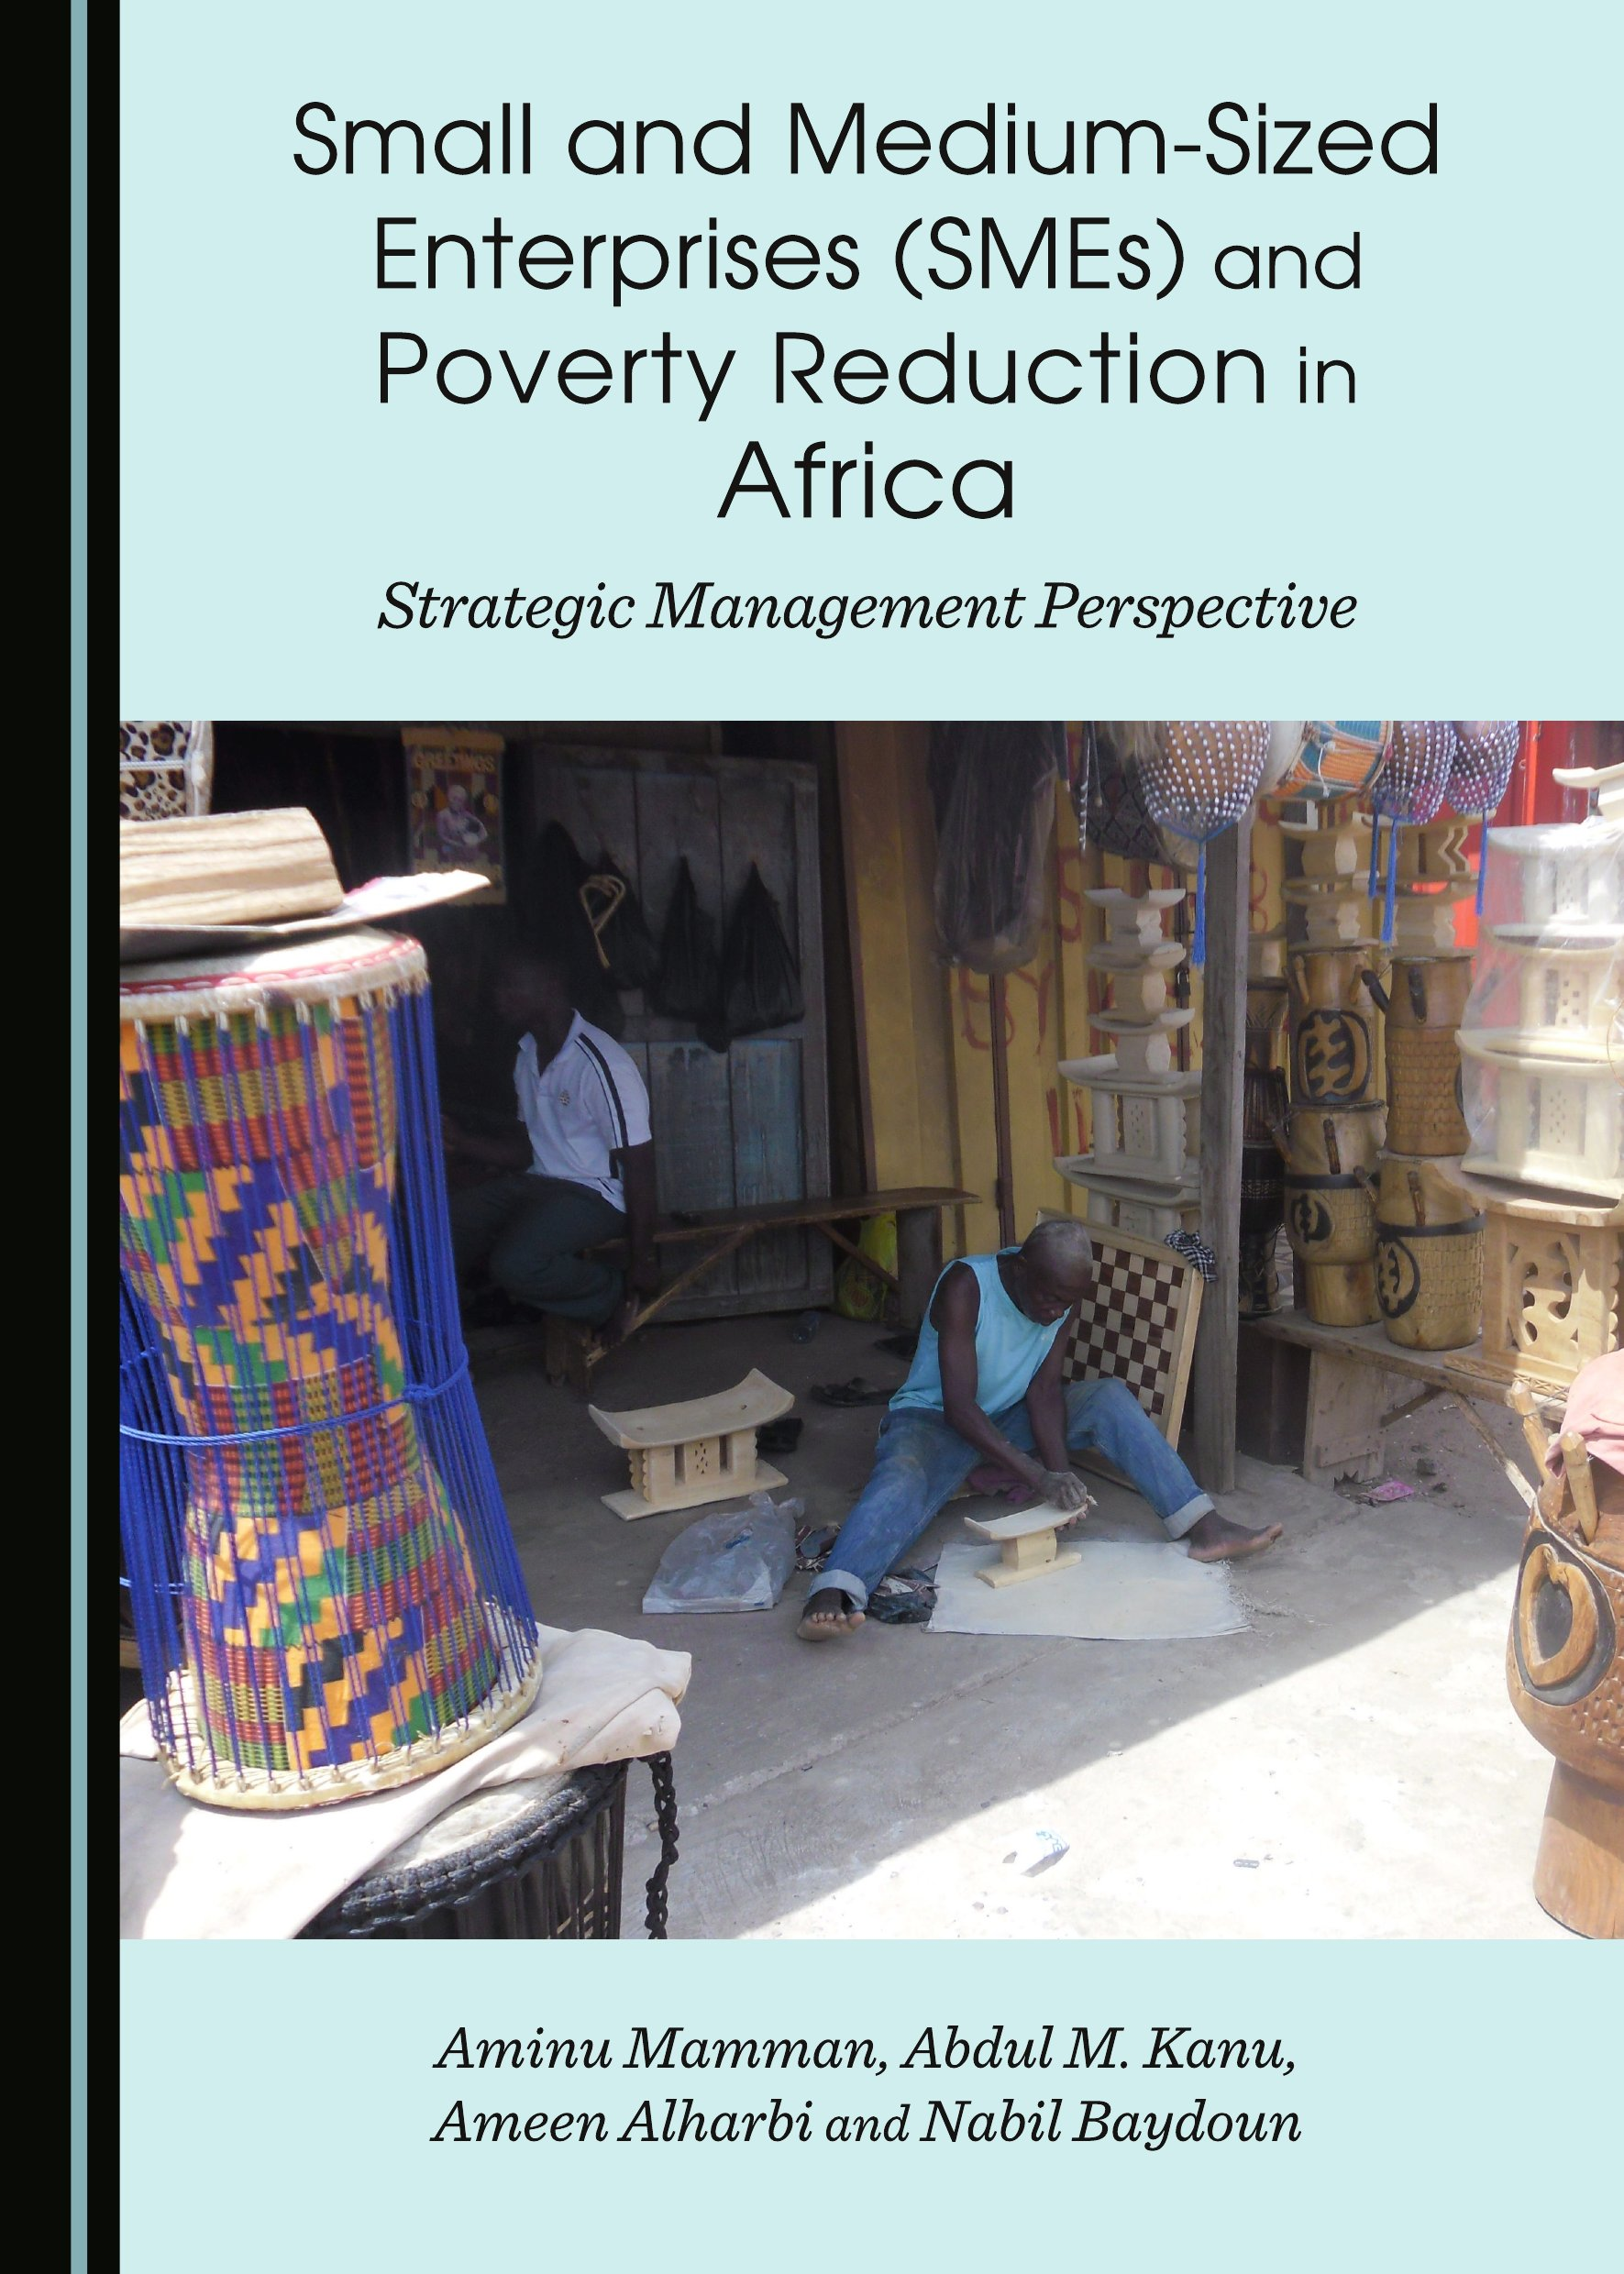 Small and Medium-Sized Enterprises (SMEs) and Poverty Reduction in Africa: Strategic Management Perspective